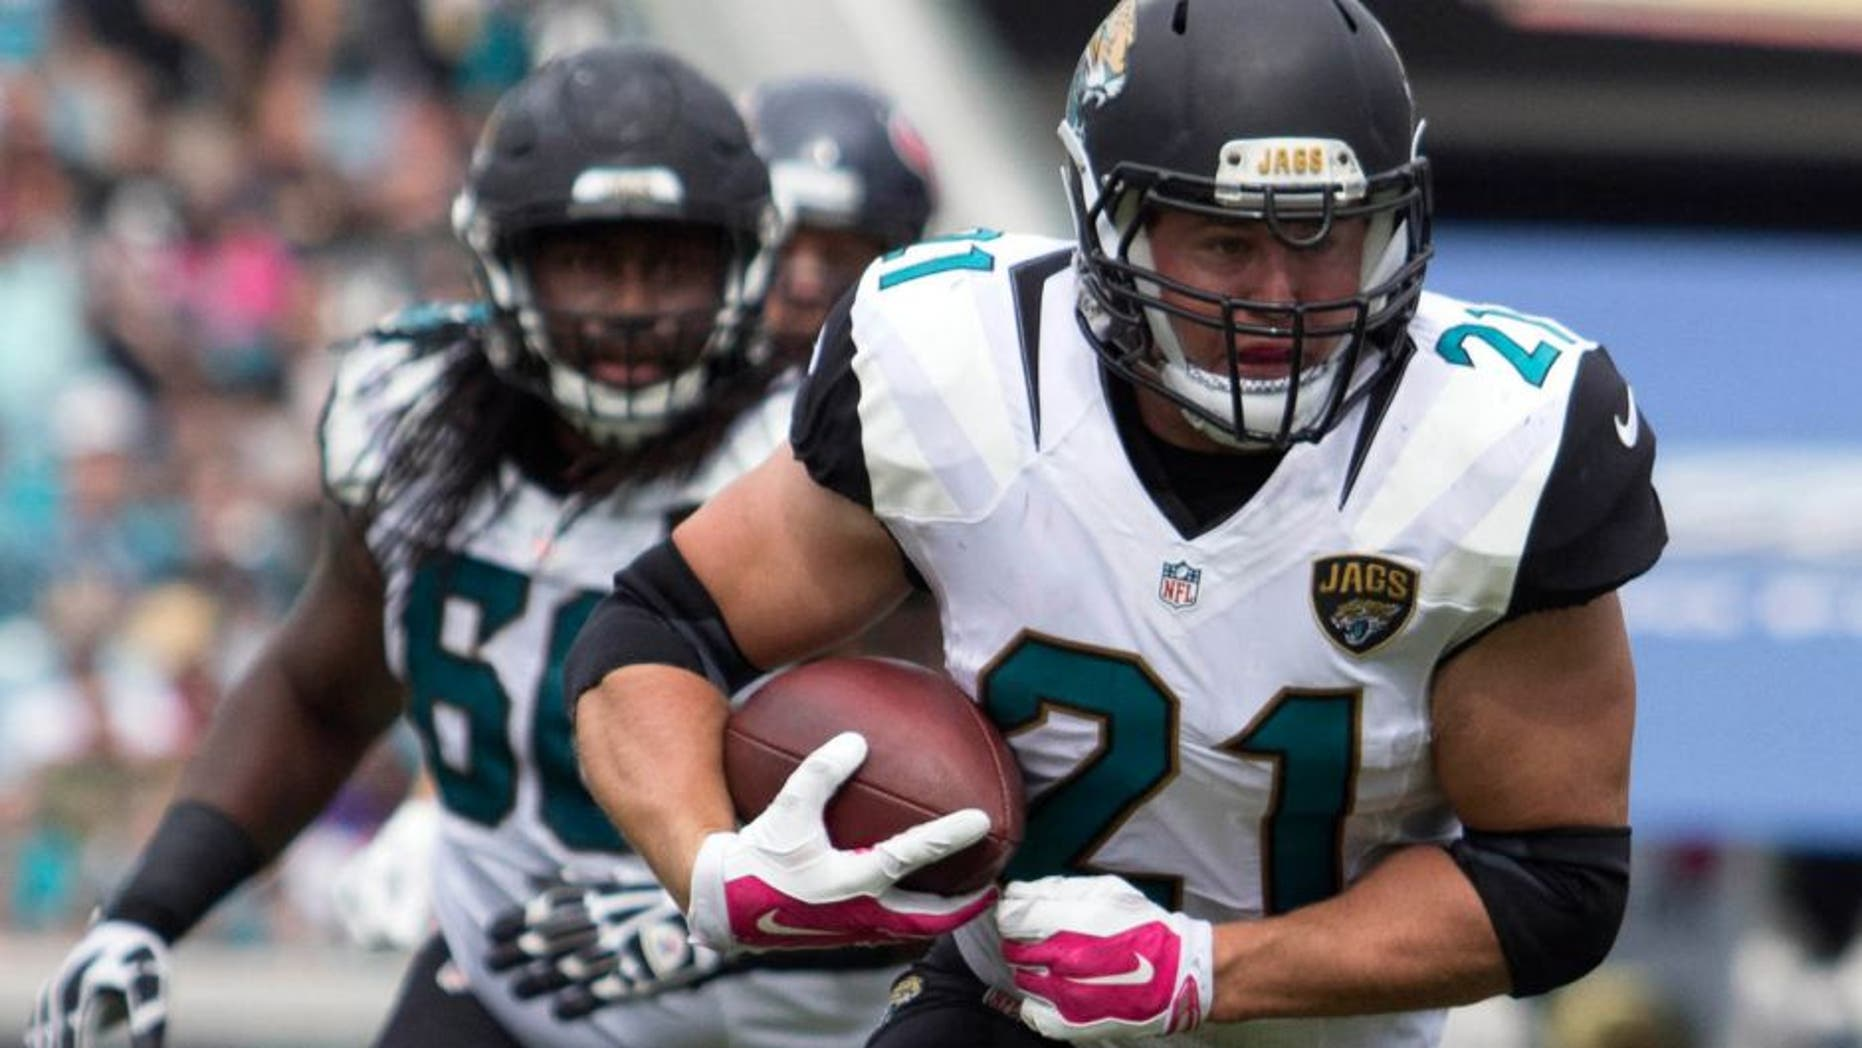 Oct 18, 2015; Jacksonville, FL, USA; Jacksonville Jaguars running back Toby Gerhart (21) runs during the second quarter against the Houston Texans at EverBank Field. Mandatory Credit: Logan Bowles-USA TODAY Sports